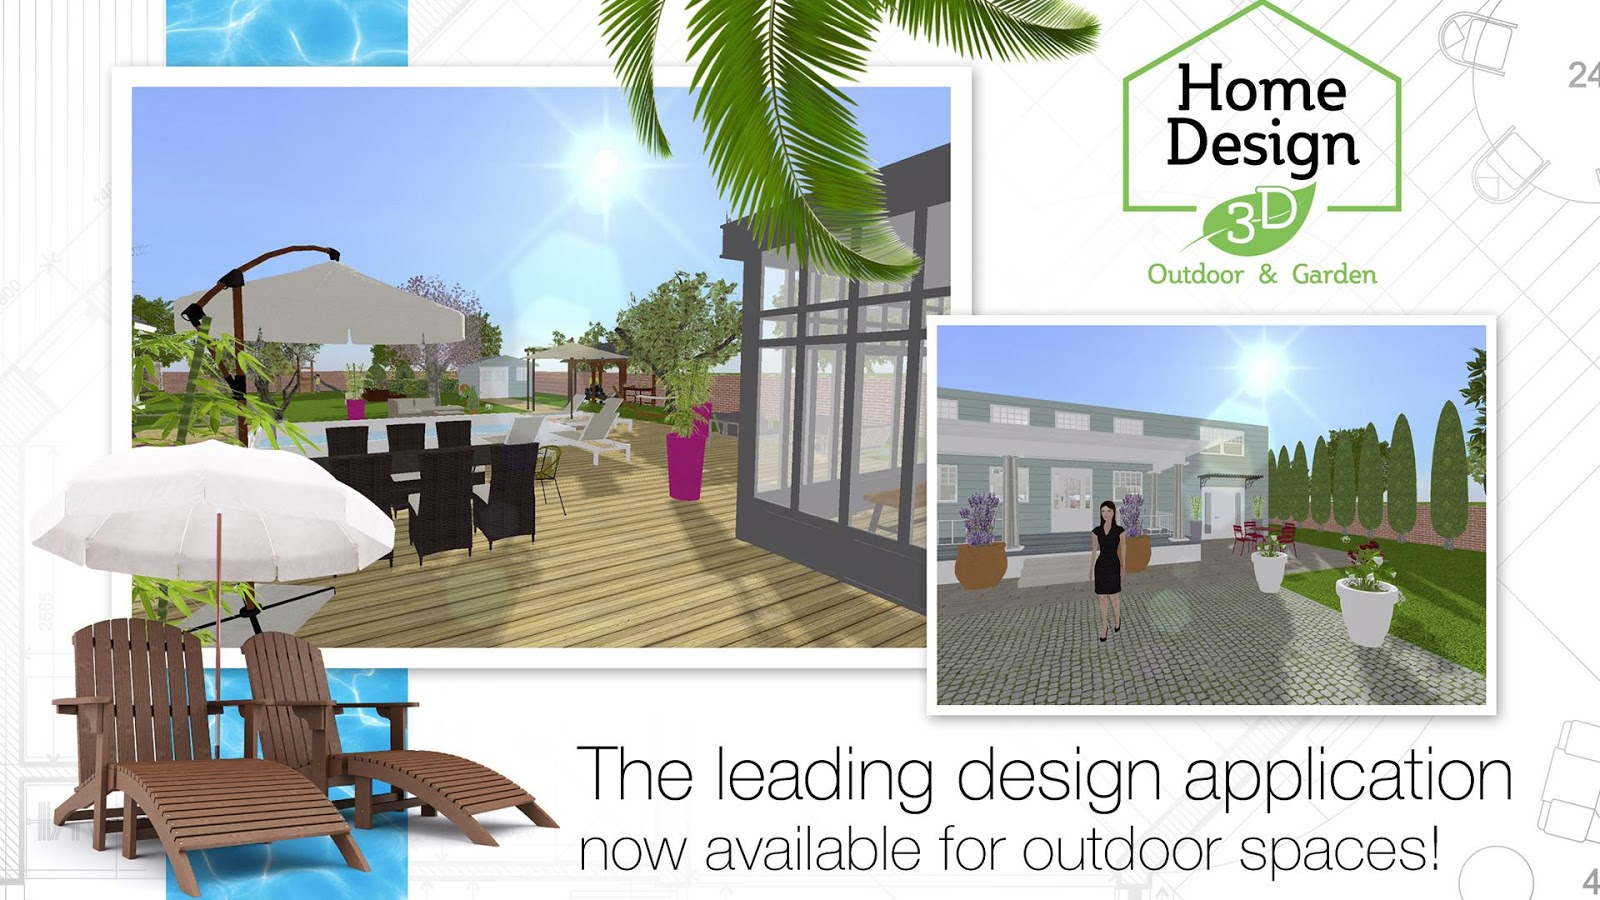 Home Design 3D Outdoor-Garden